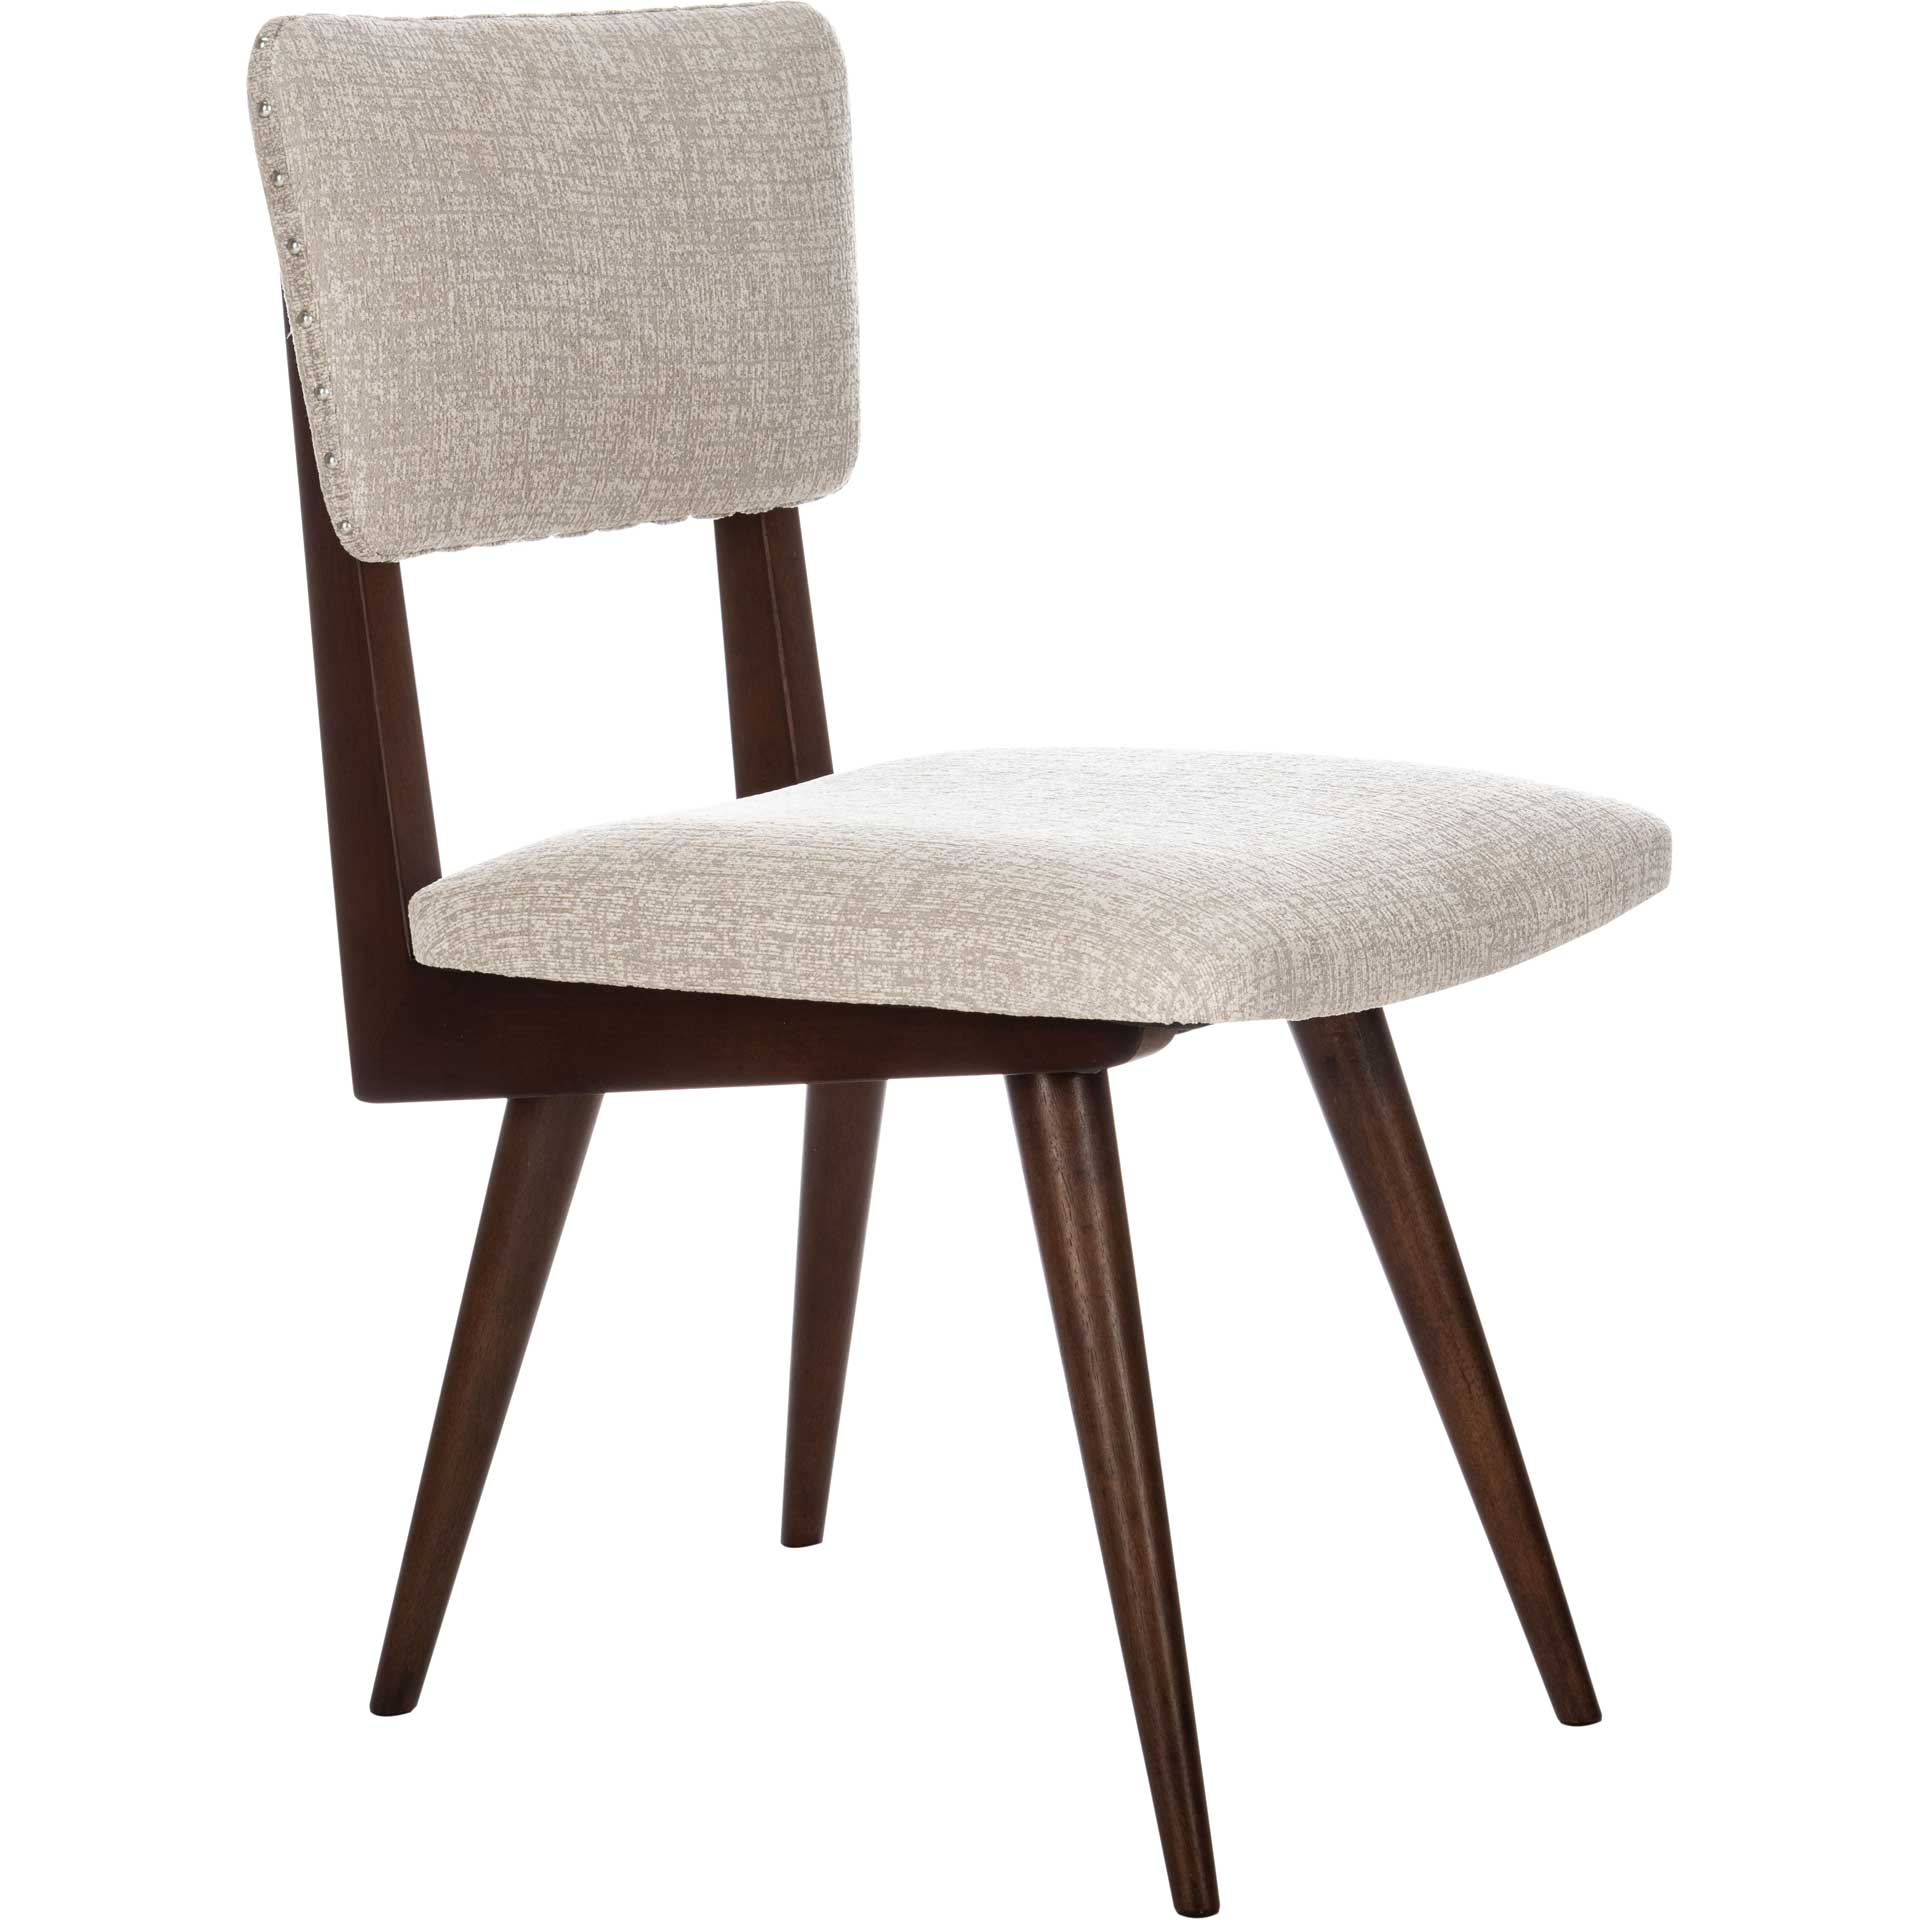 August Dining Chair Taupe/Dark Walnut (Set of 2)